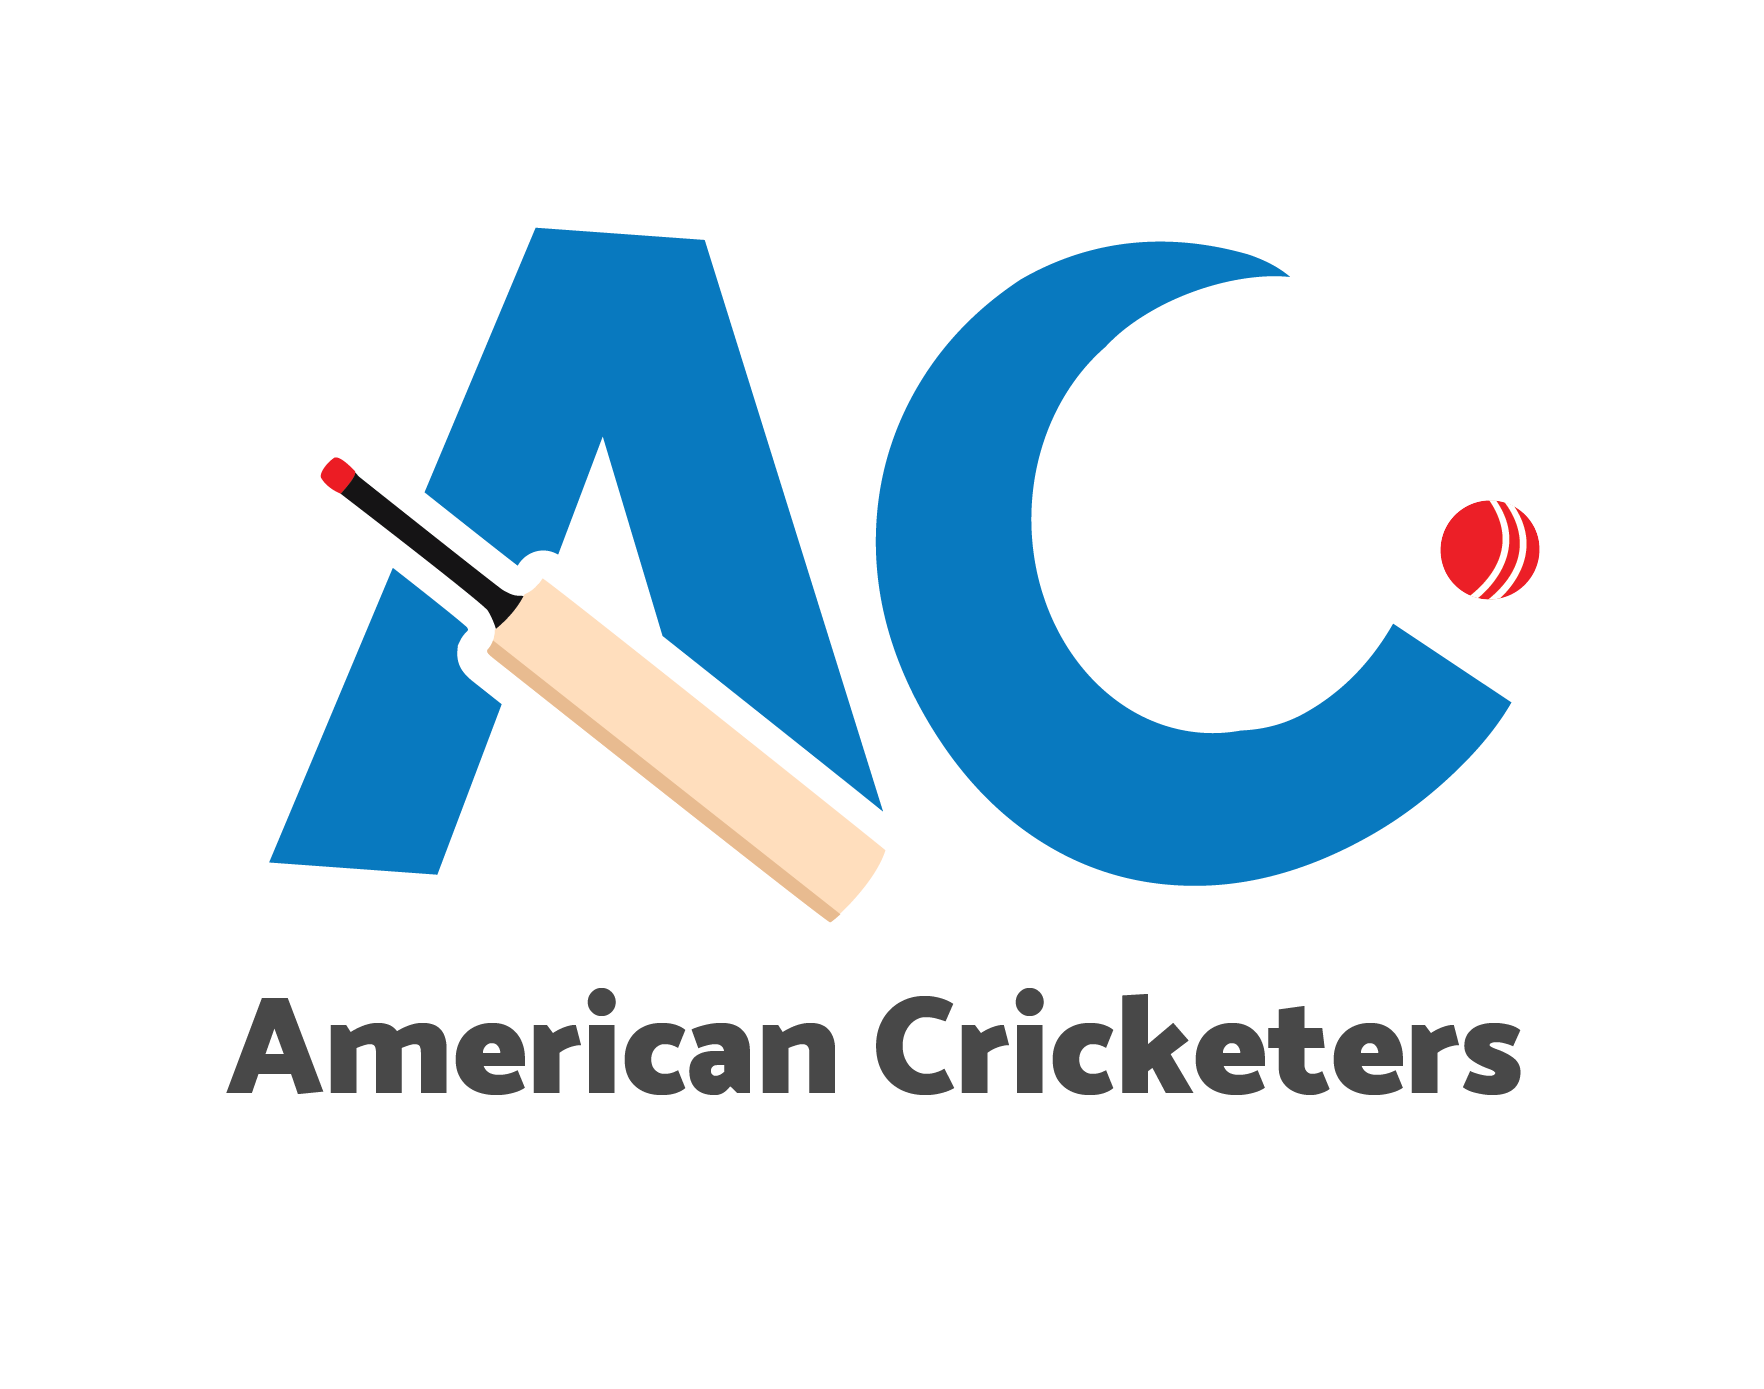 American Cricketers